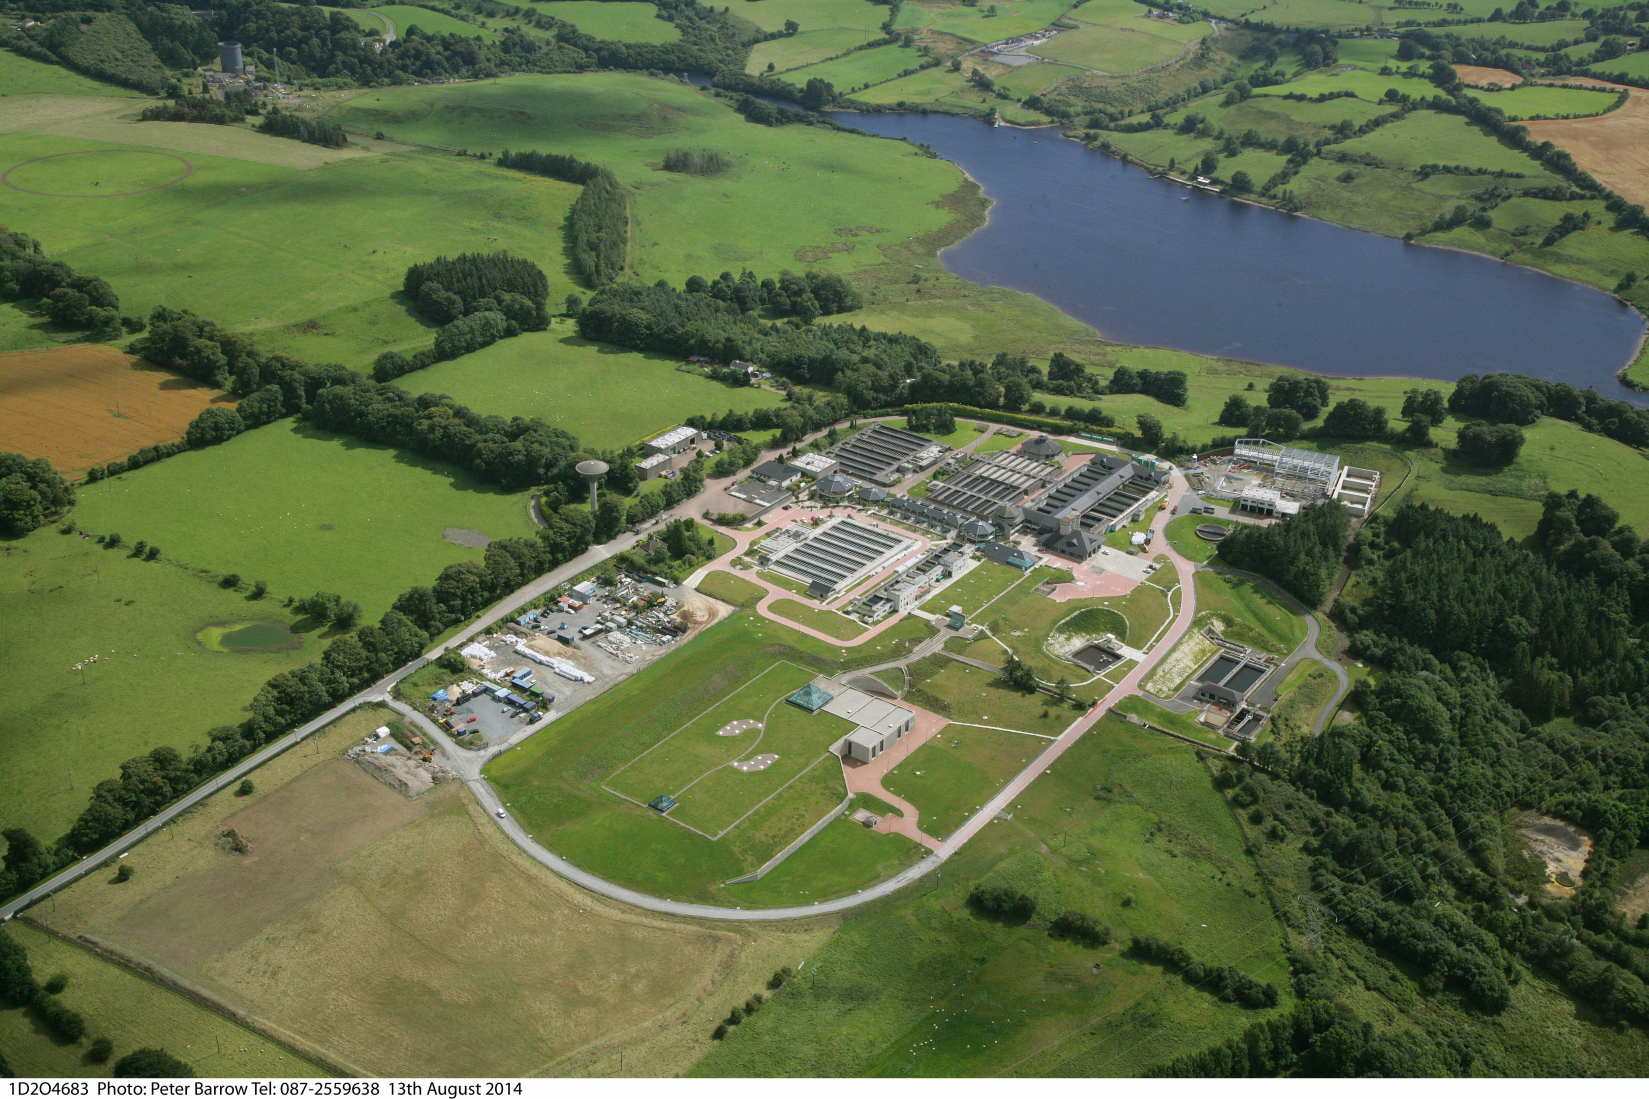 Aerial photo of Ballymore Eustace Water Treatment Plant